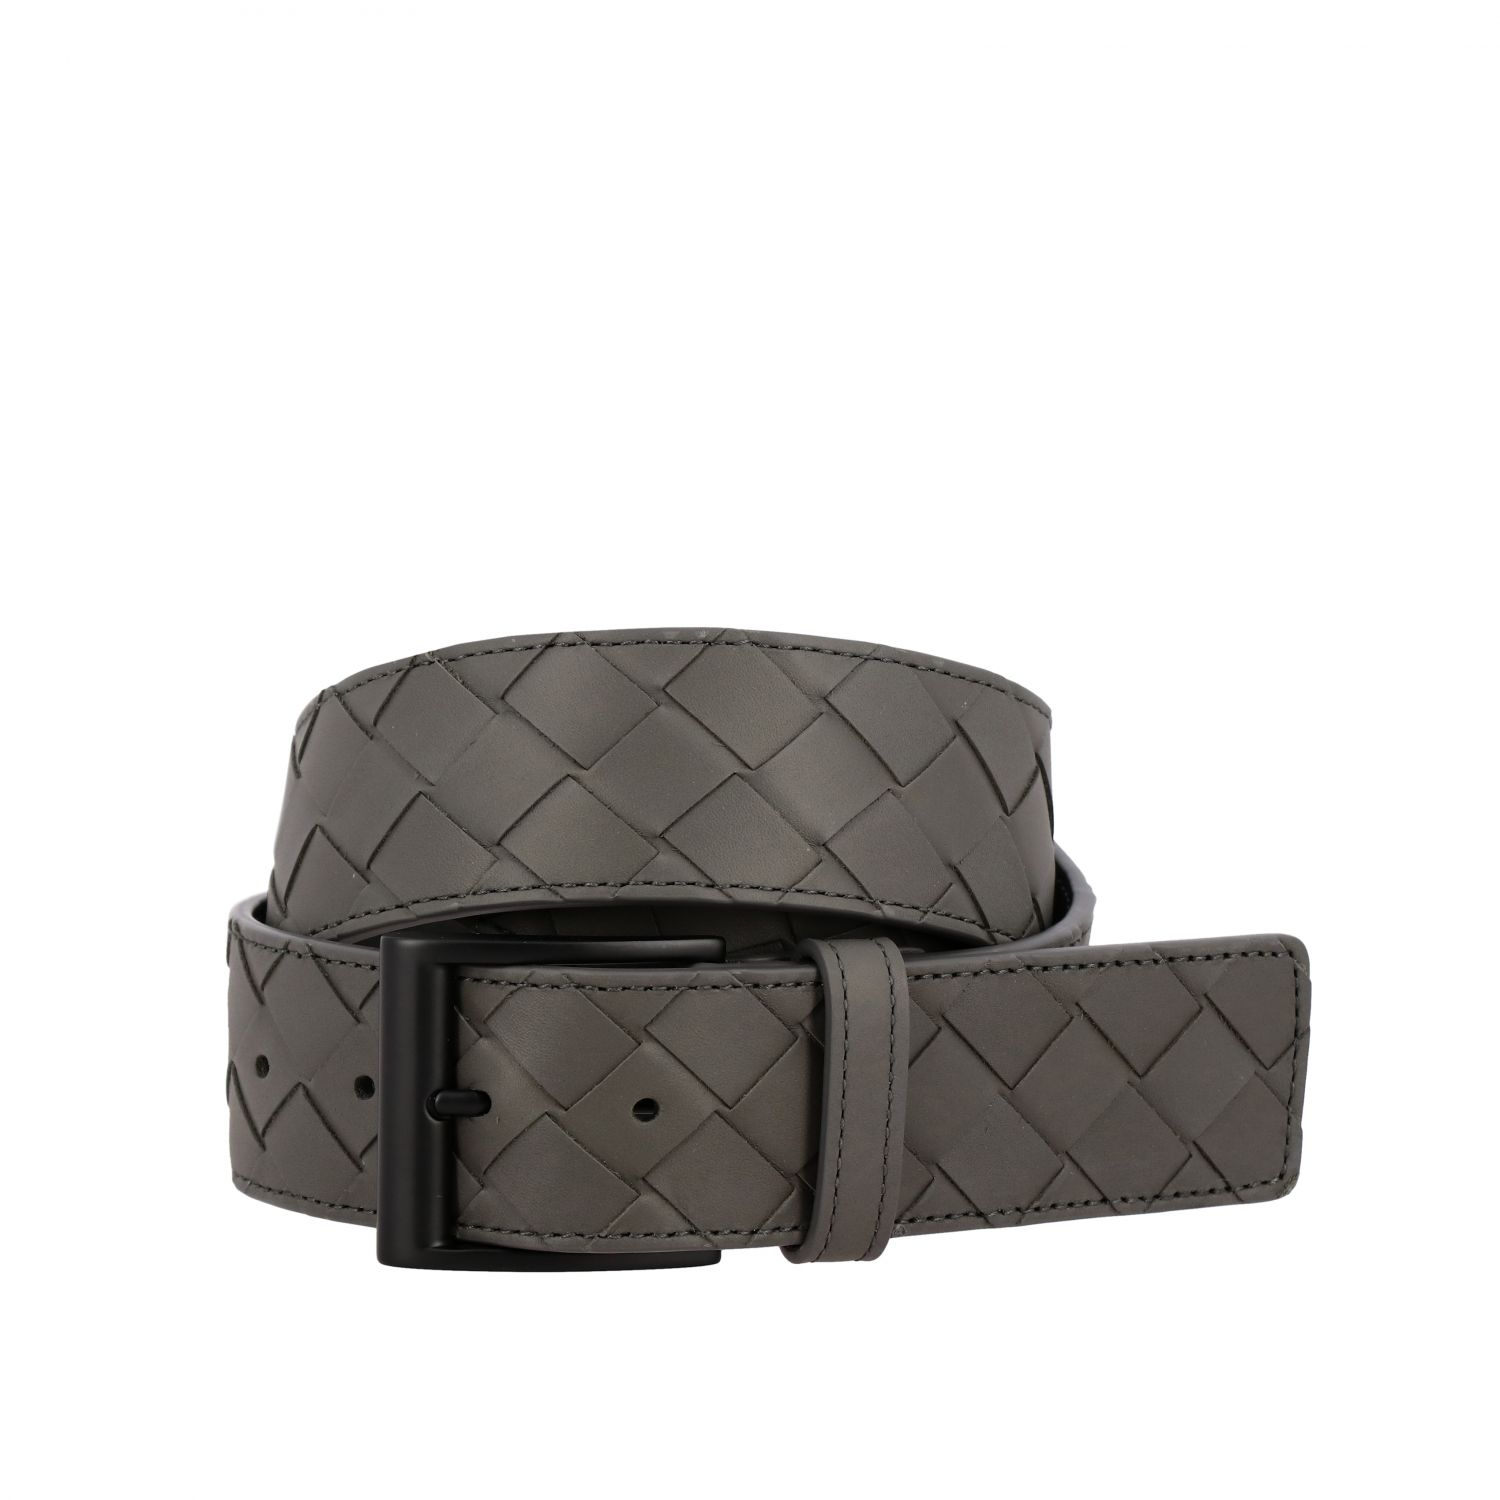 Belt Bottega Veneta: Bottega Veneta belt in woven leather grey 1